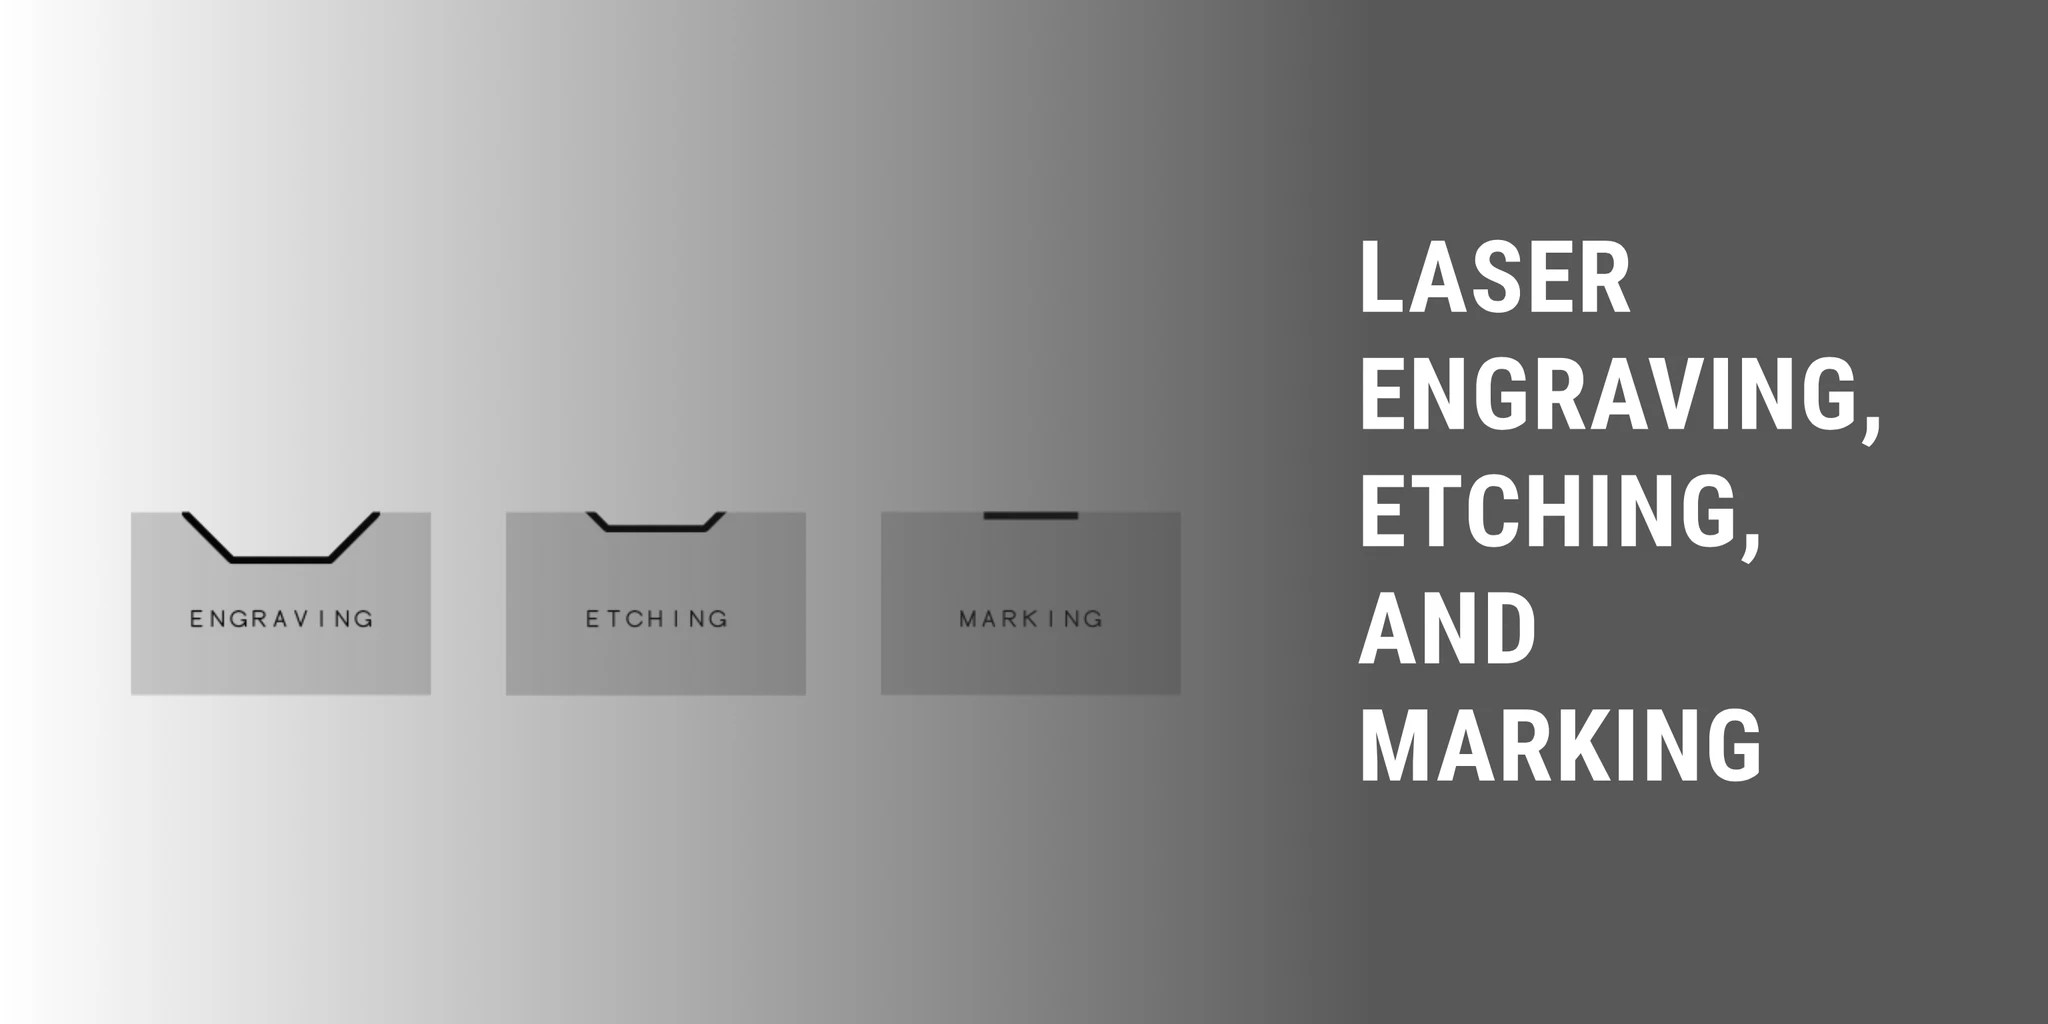 differences between laser marking, etching, and engraving